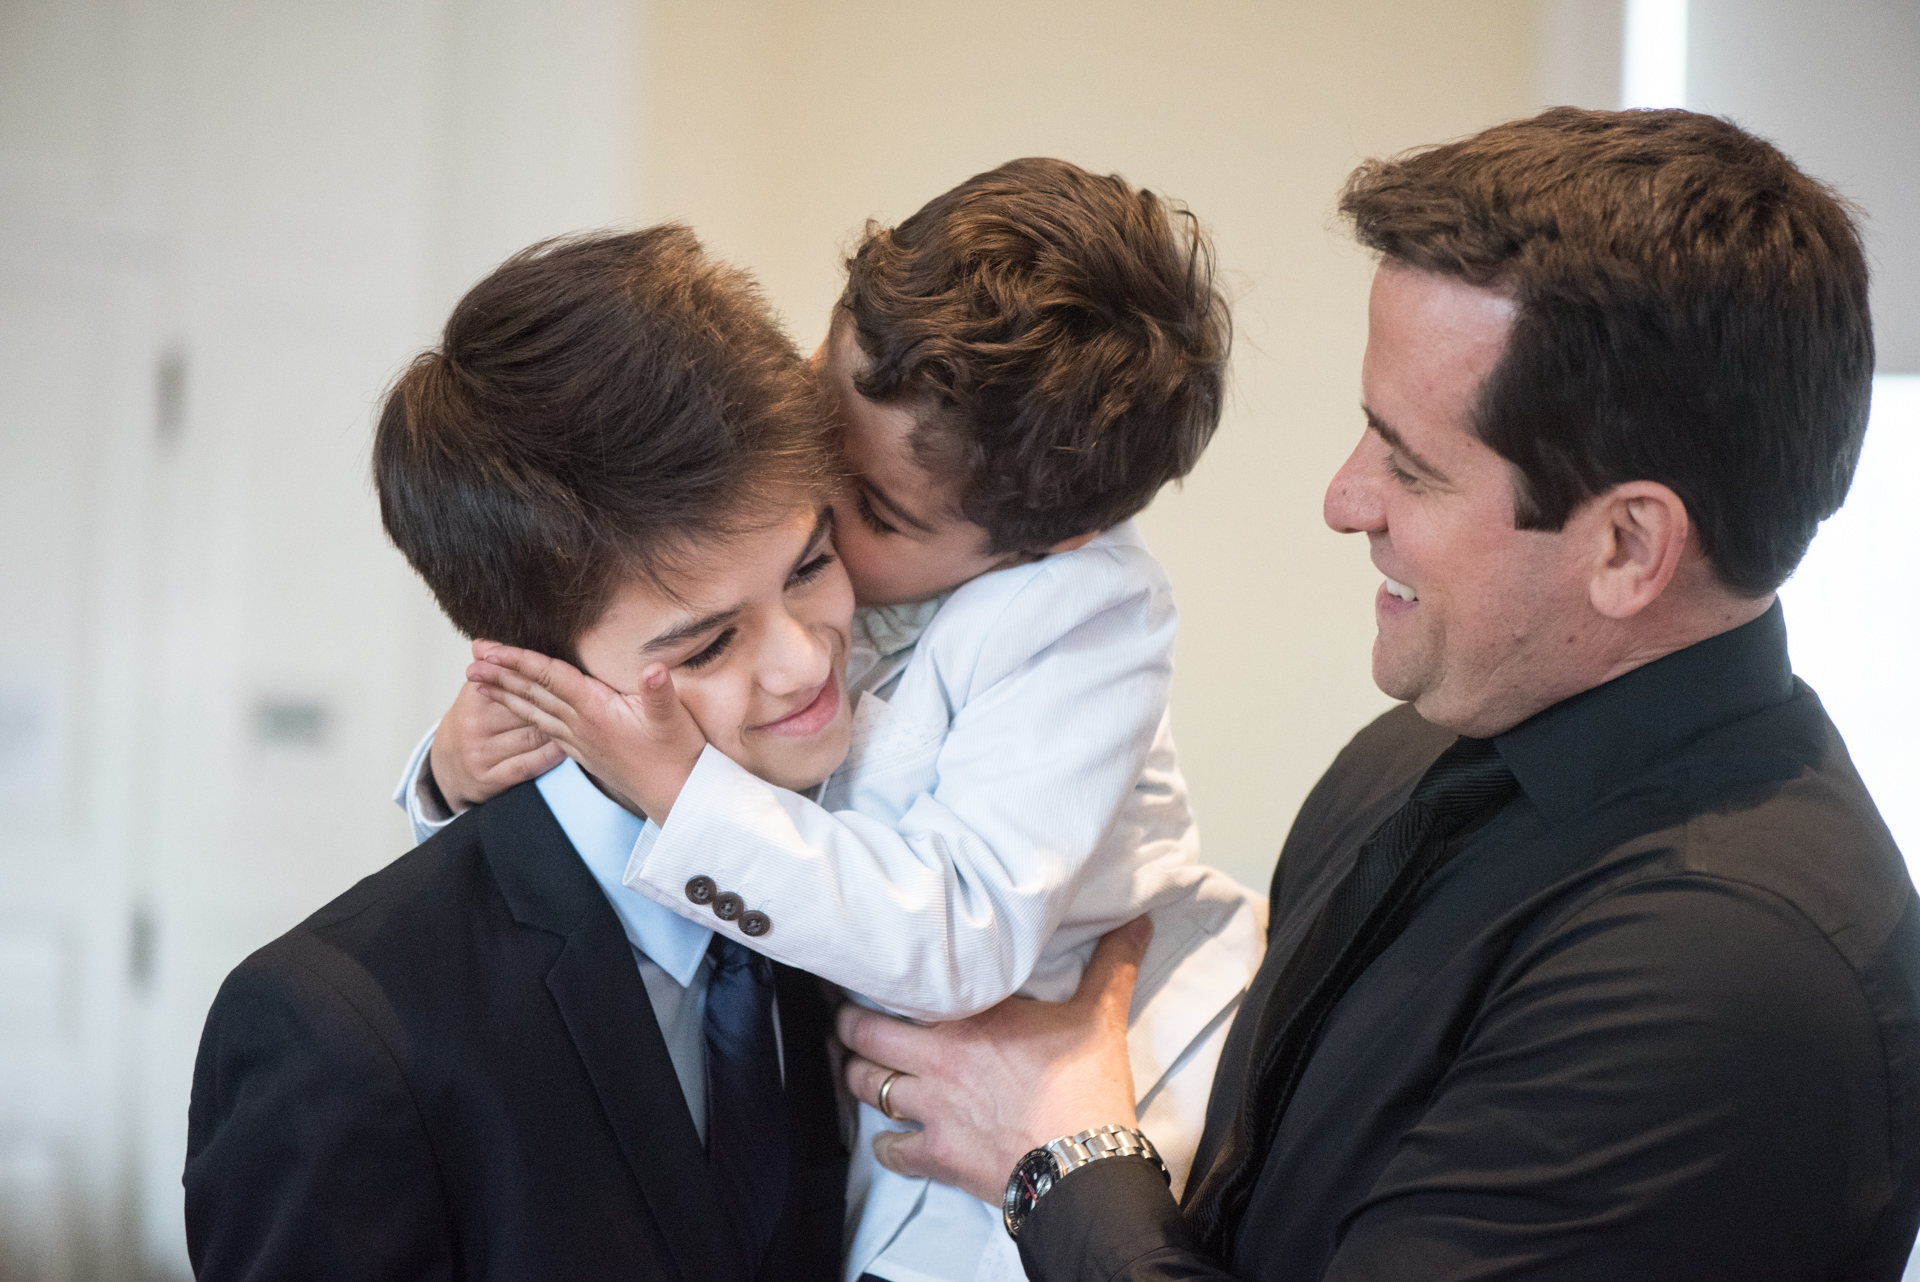 Matthew gets a kiss from Ian, with father Steve looking on.  Sometimes it's the simple moments that speak volumes.